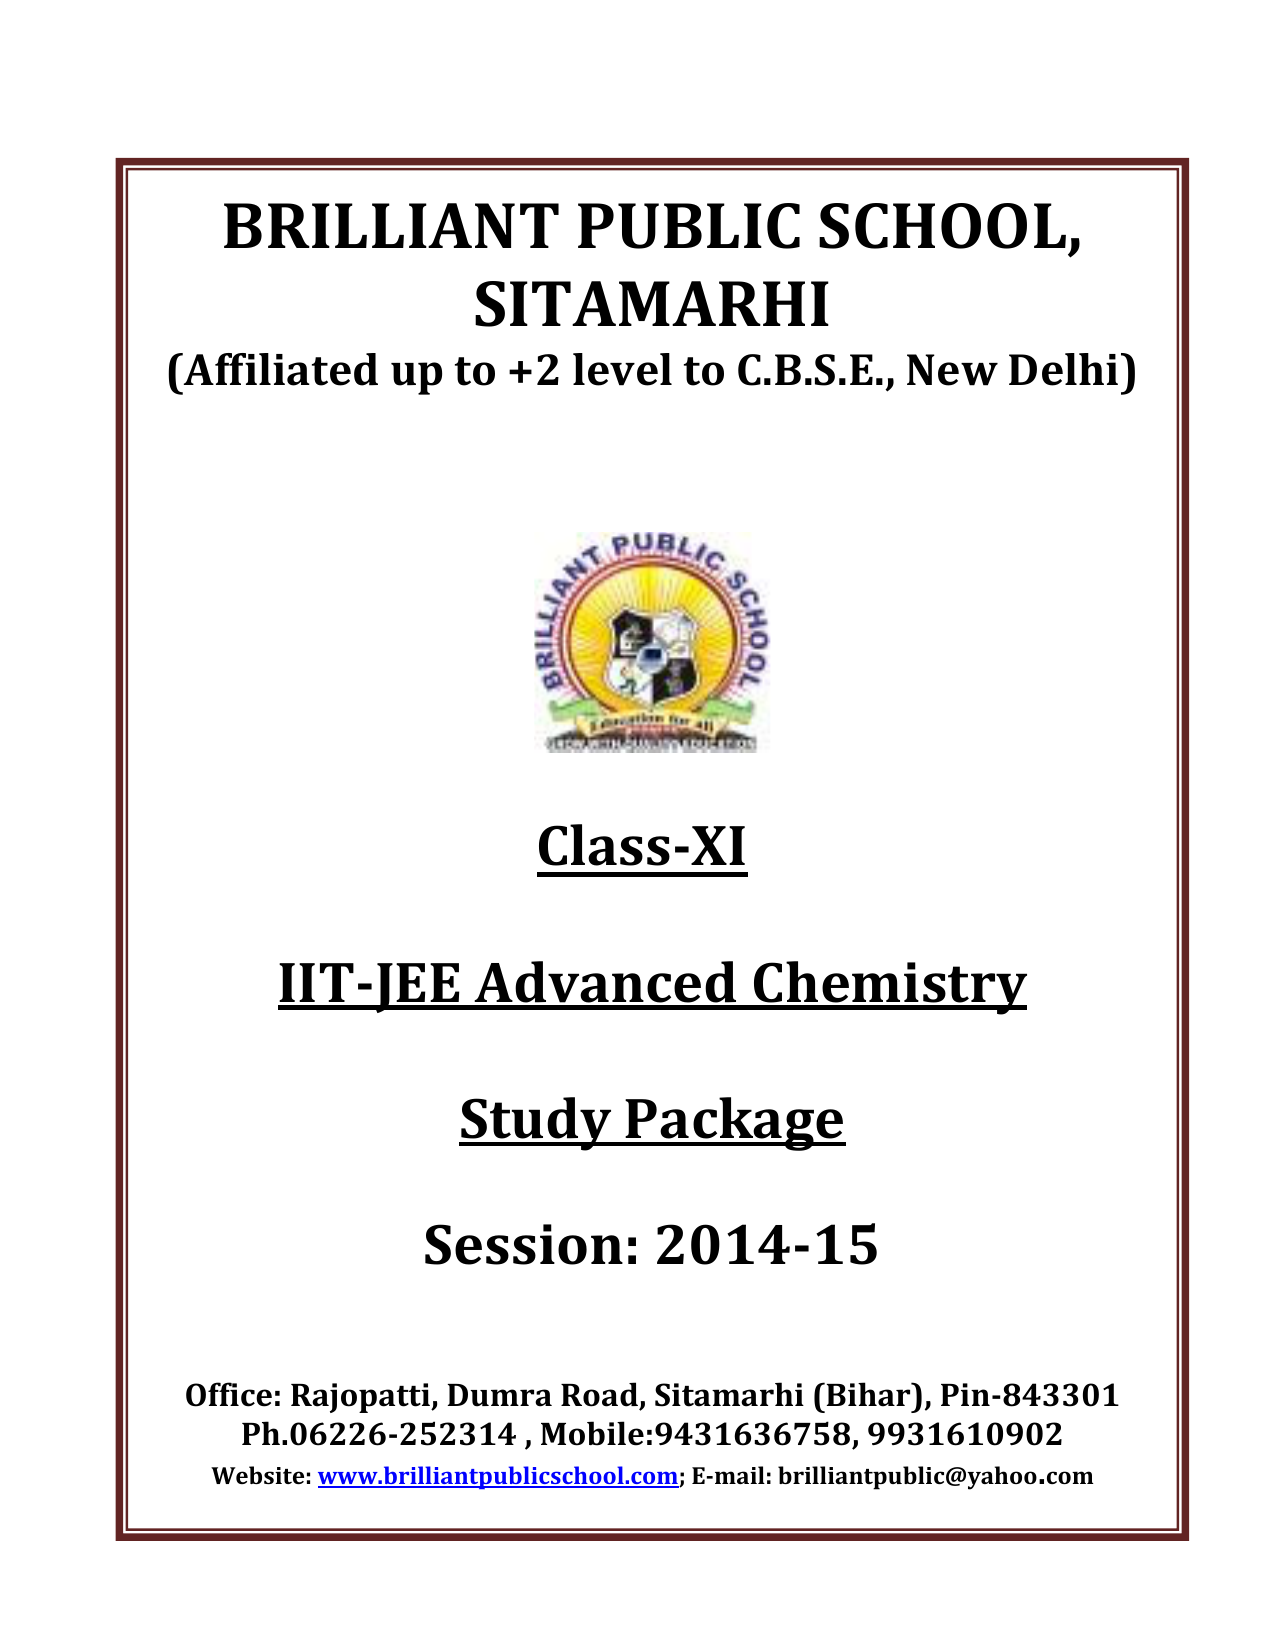 Iit Jee Advanced Brilliant Public School Sitamarhi